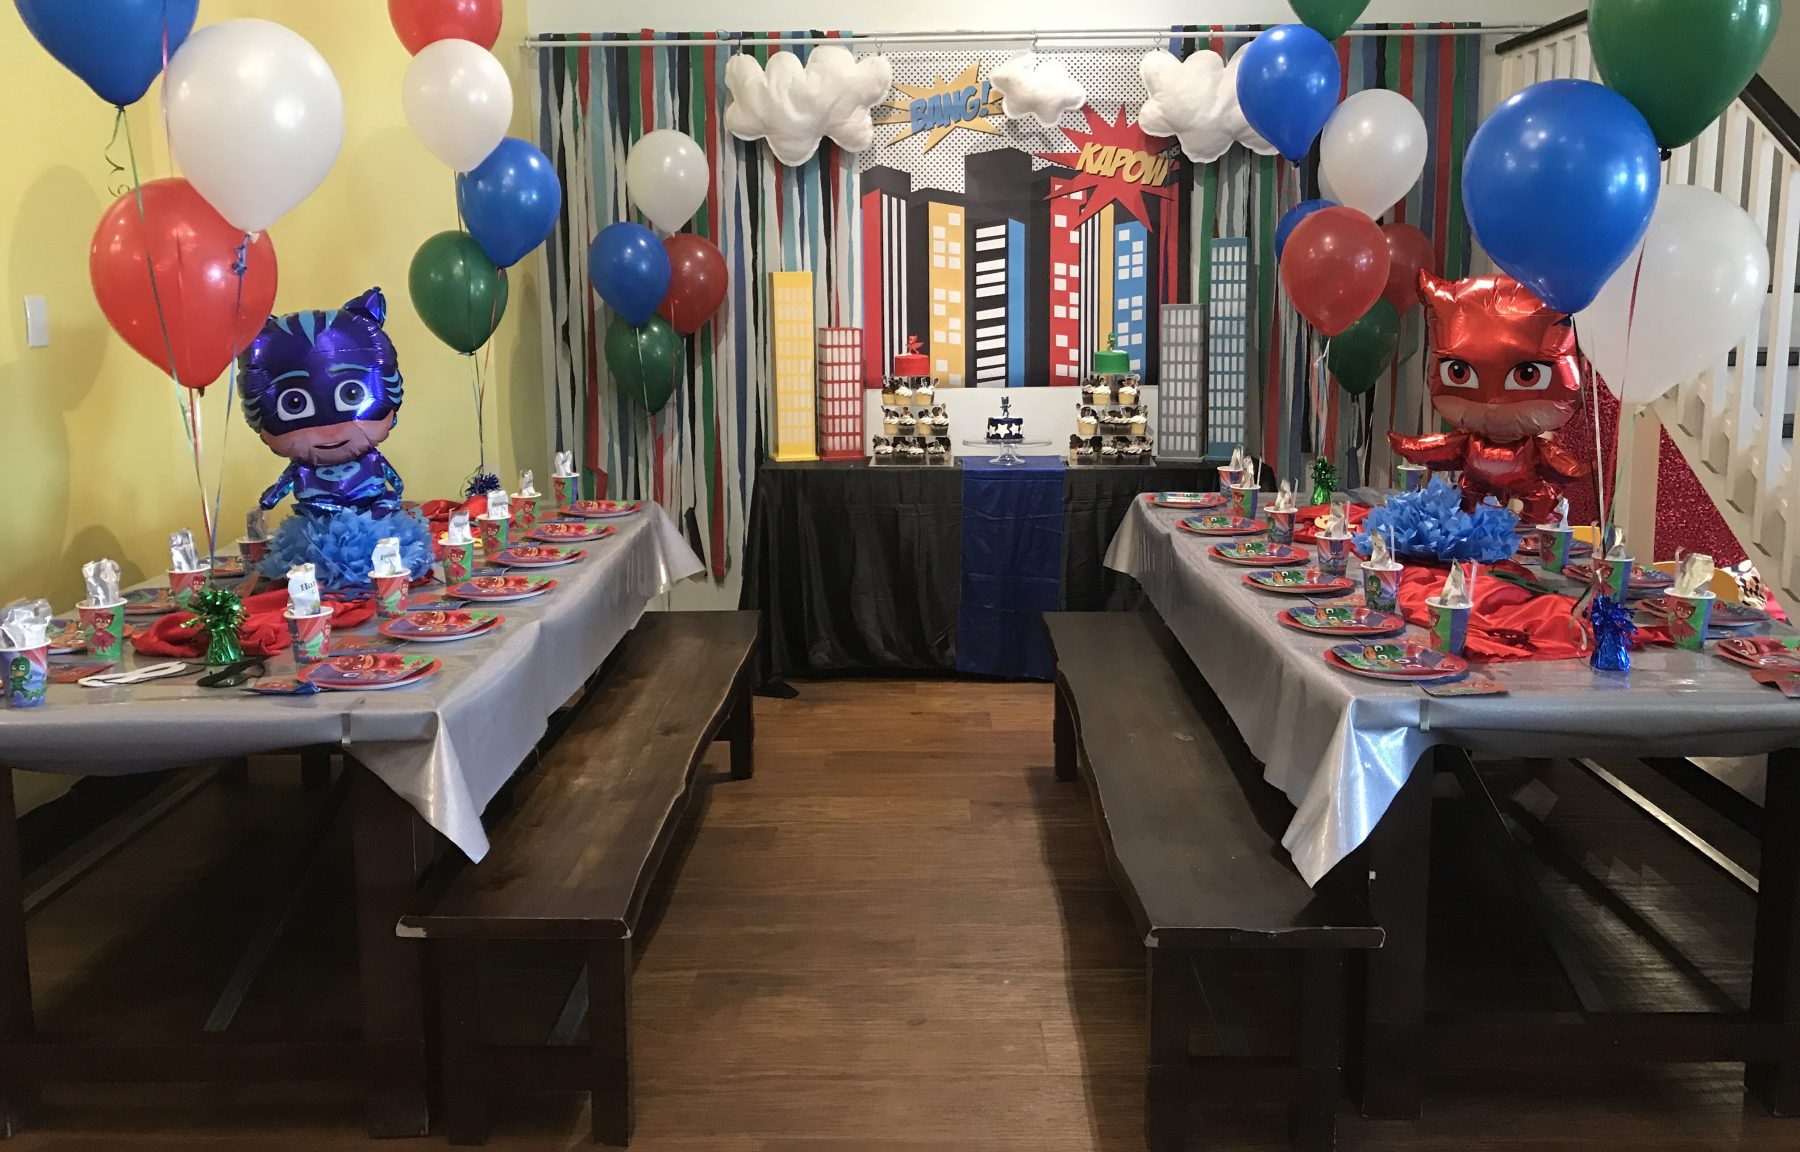 PJ Masks Birthday Cake - Complete Party DIY Plan, shopping guide, ideas and inspo! Super Gekko, Luna Girl, Owlette, and more! Cake table, backdrops, toppers, DIY! #pjmasksparty #pjmasks #supergekkoparty #supergekko #gekkocake #diy #diyparty #partyideas #kidsparties #genderneutralparties #partyfavors